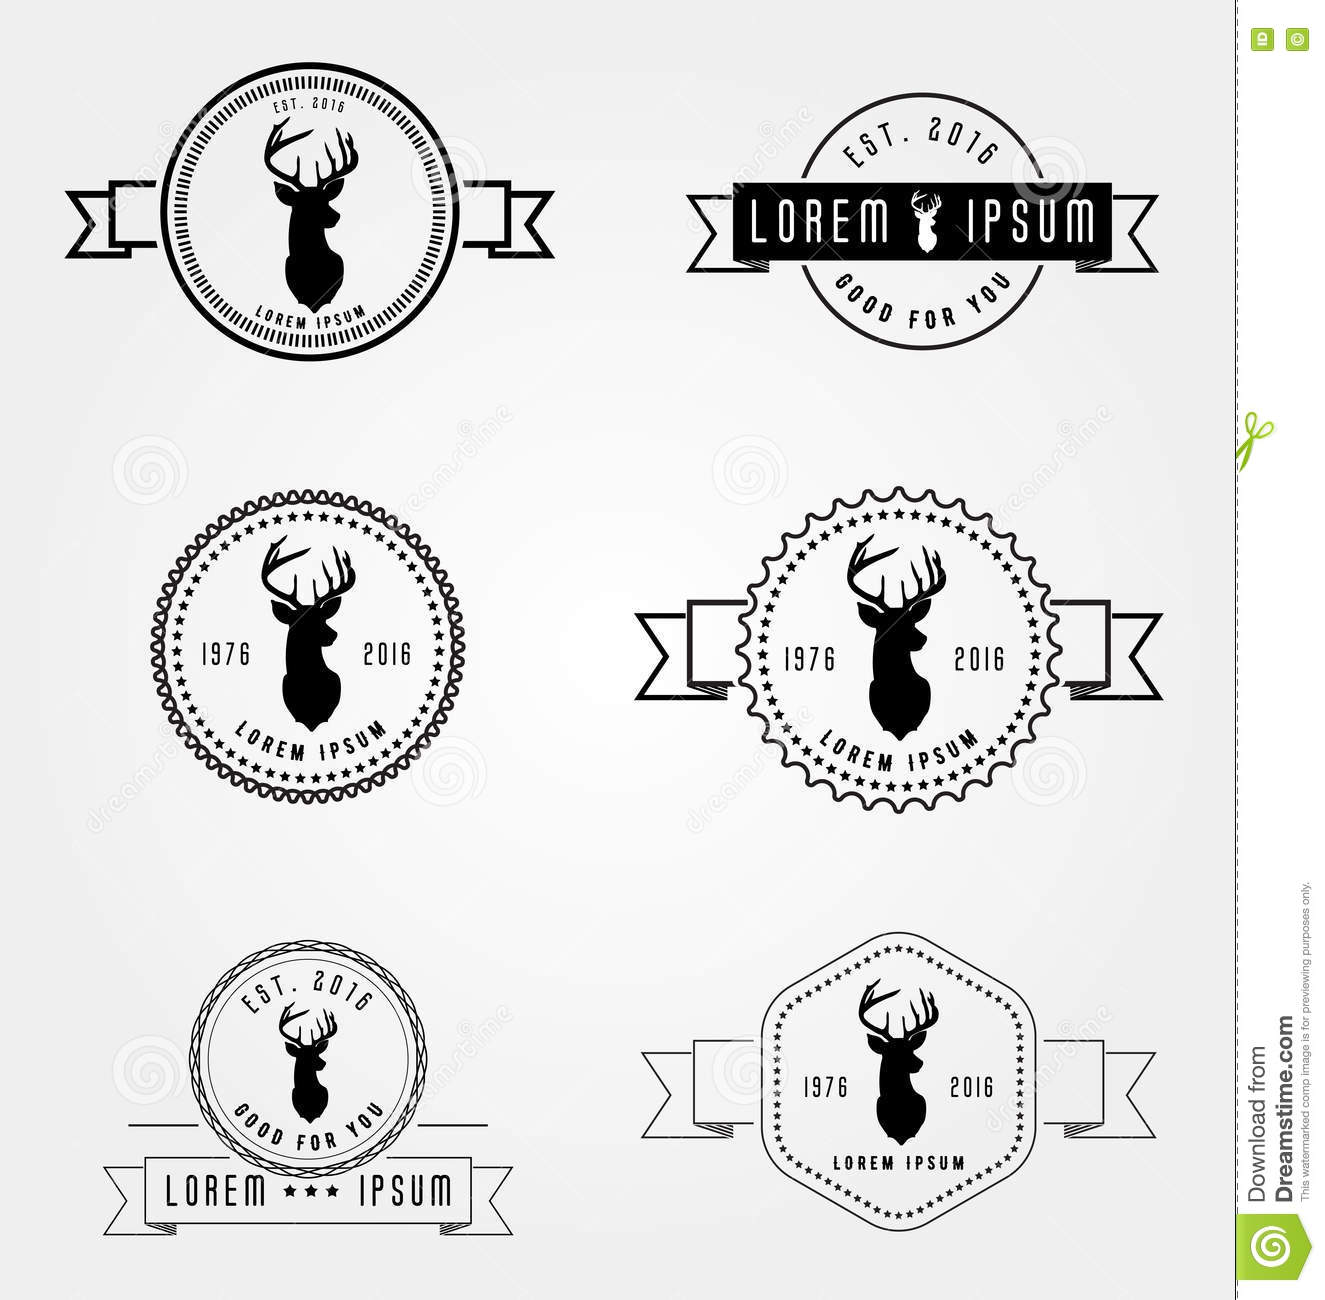 Hotel Icons Set Black Stock Vector Illustration Of Club Auto Bj74 Wiring Diagram Files